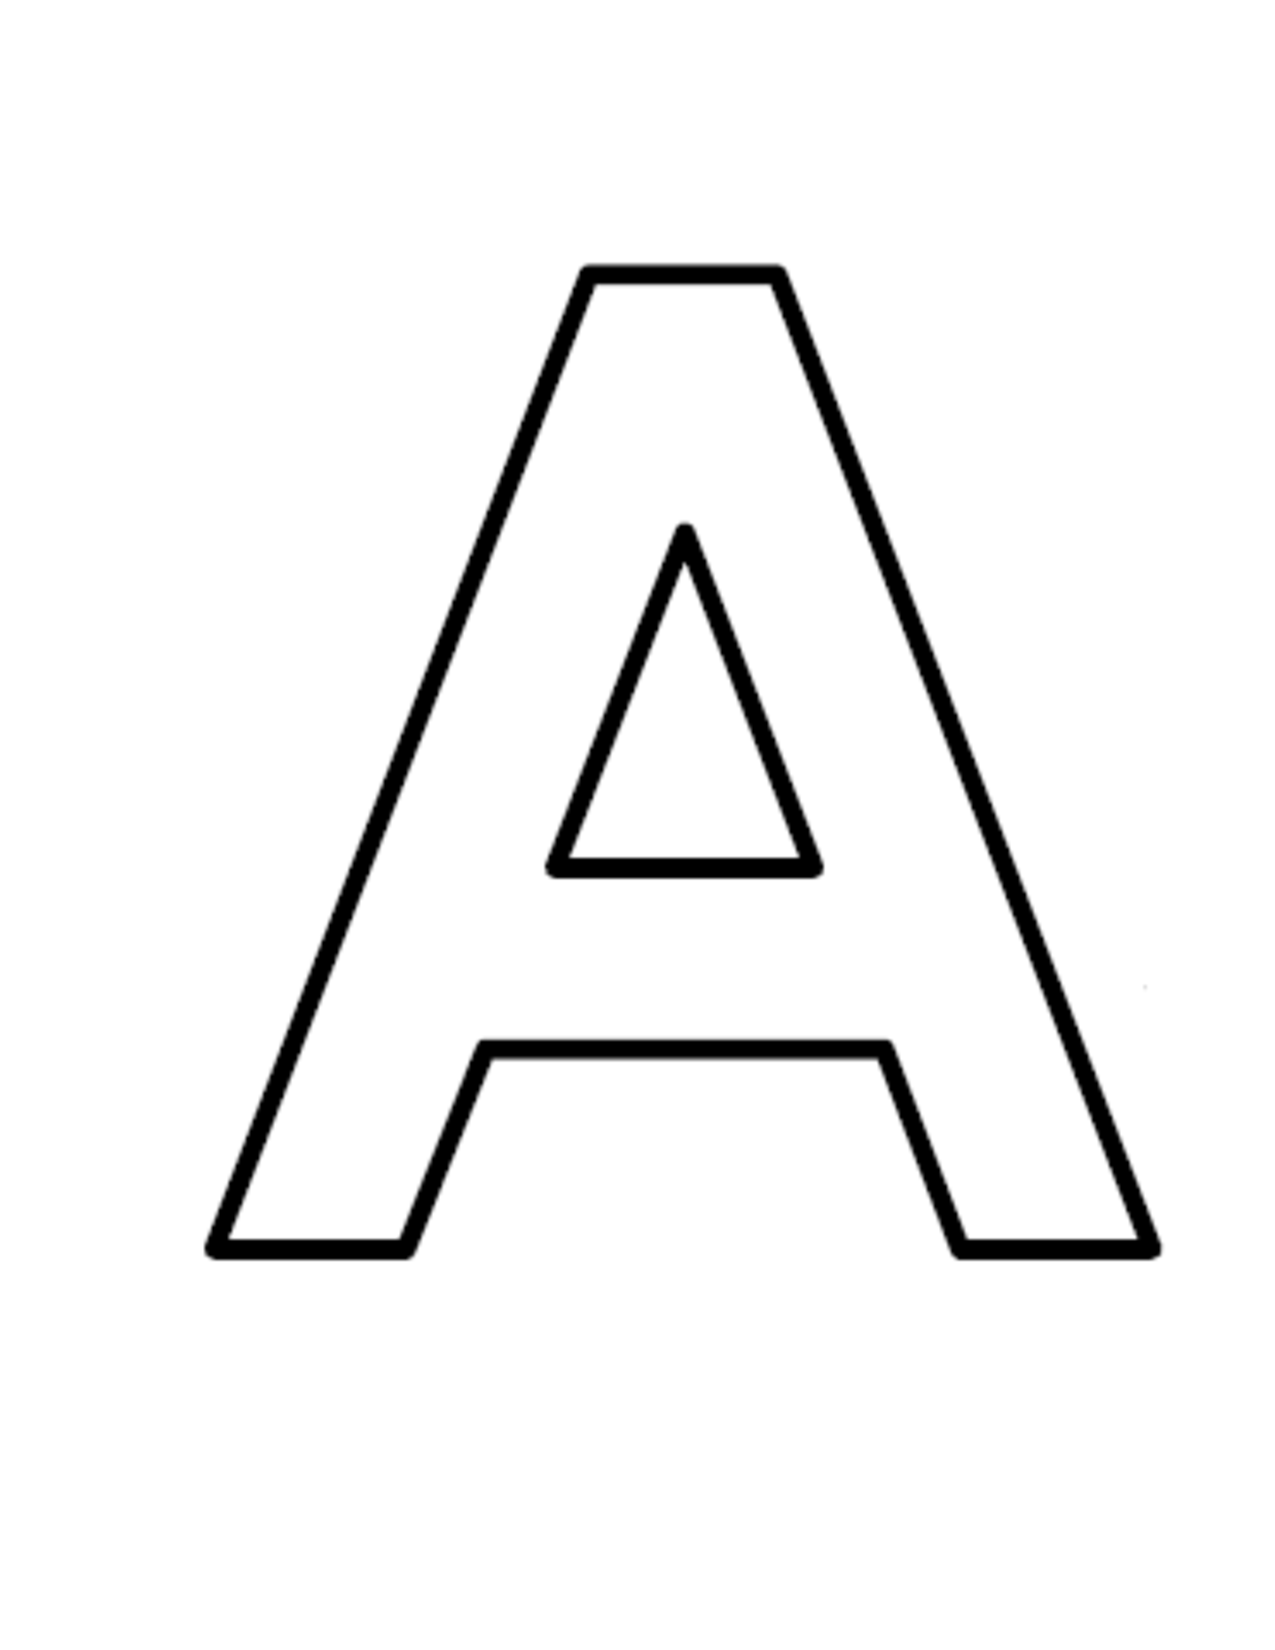 Alphabet Printable Images Gallery Category Page 6